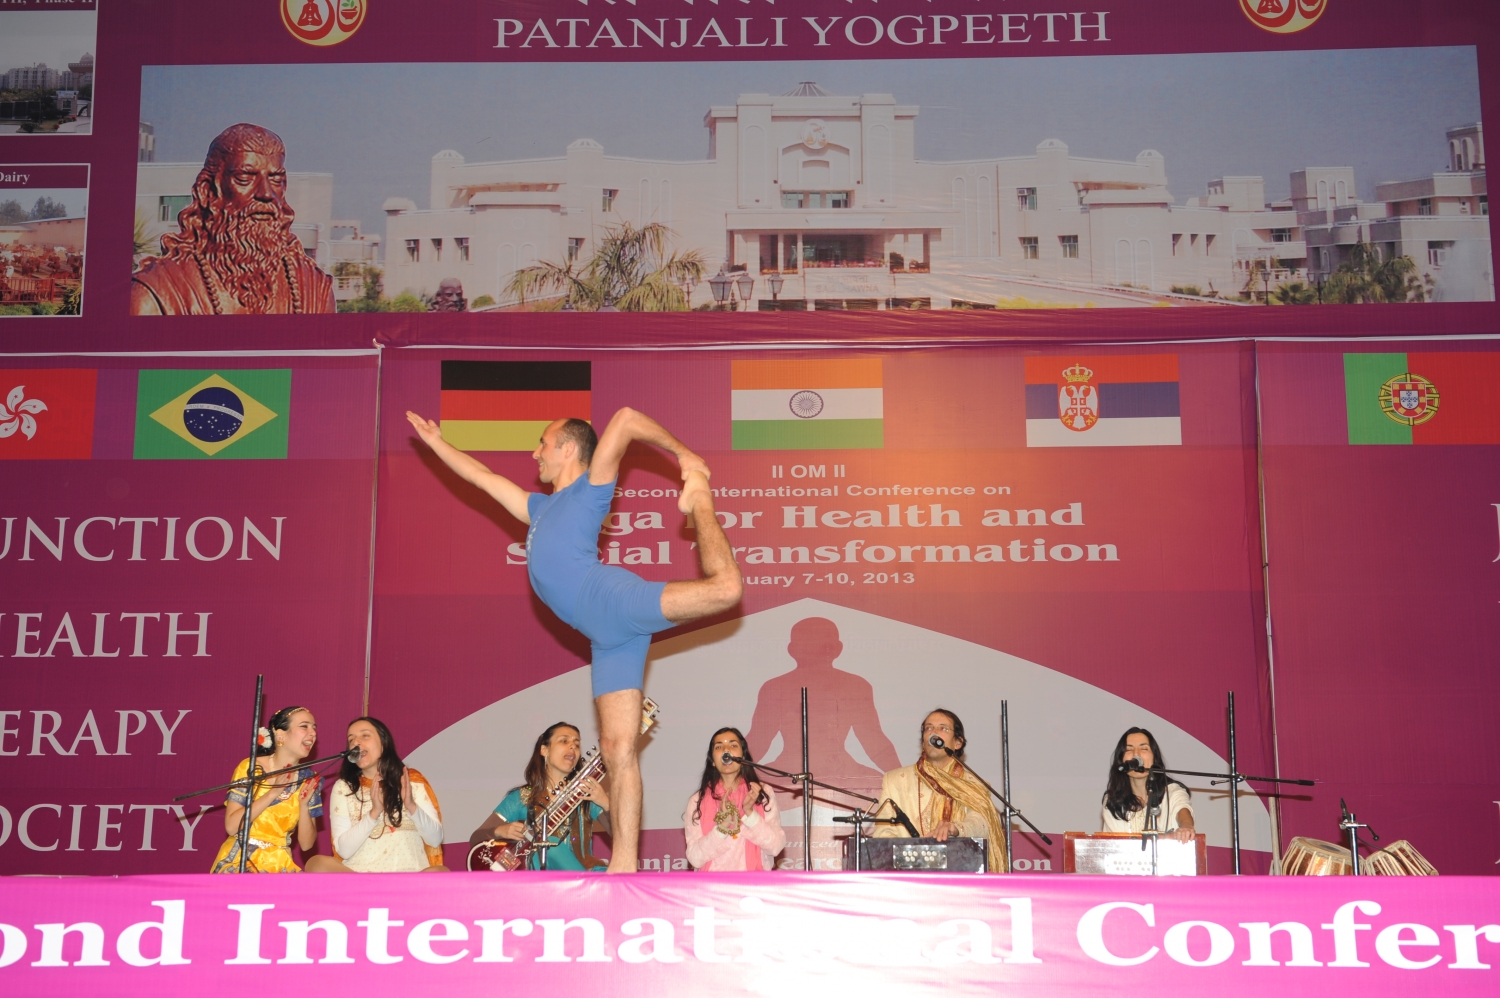 Patañjali Yogapeeth - Yoga for Health and Social Transformation - Inde, Haridvar - 2013, janvier